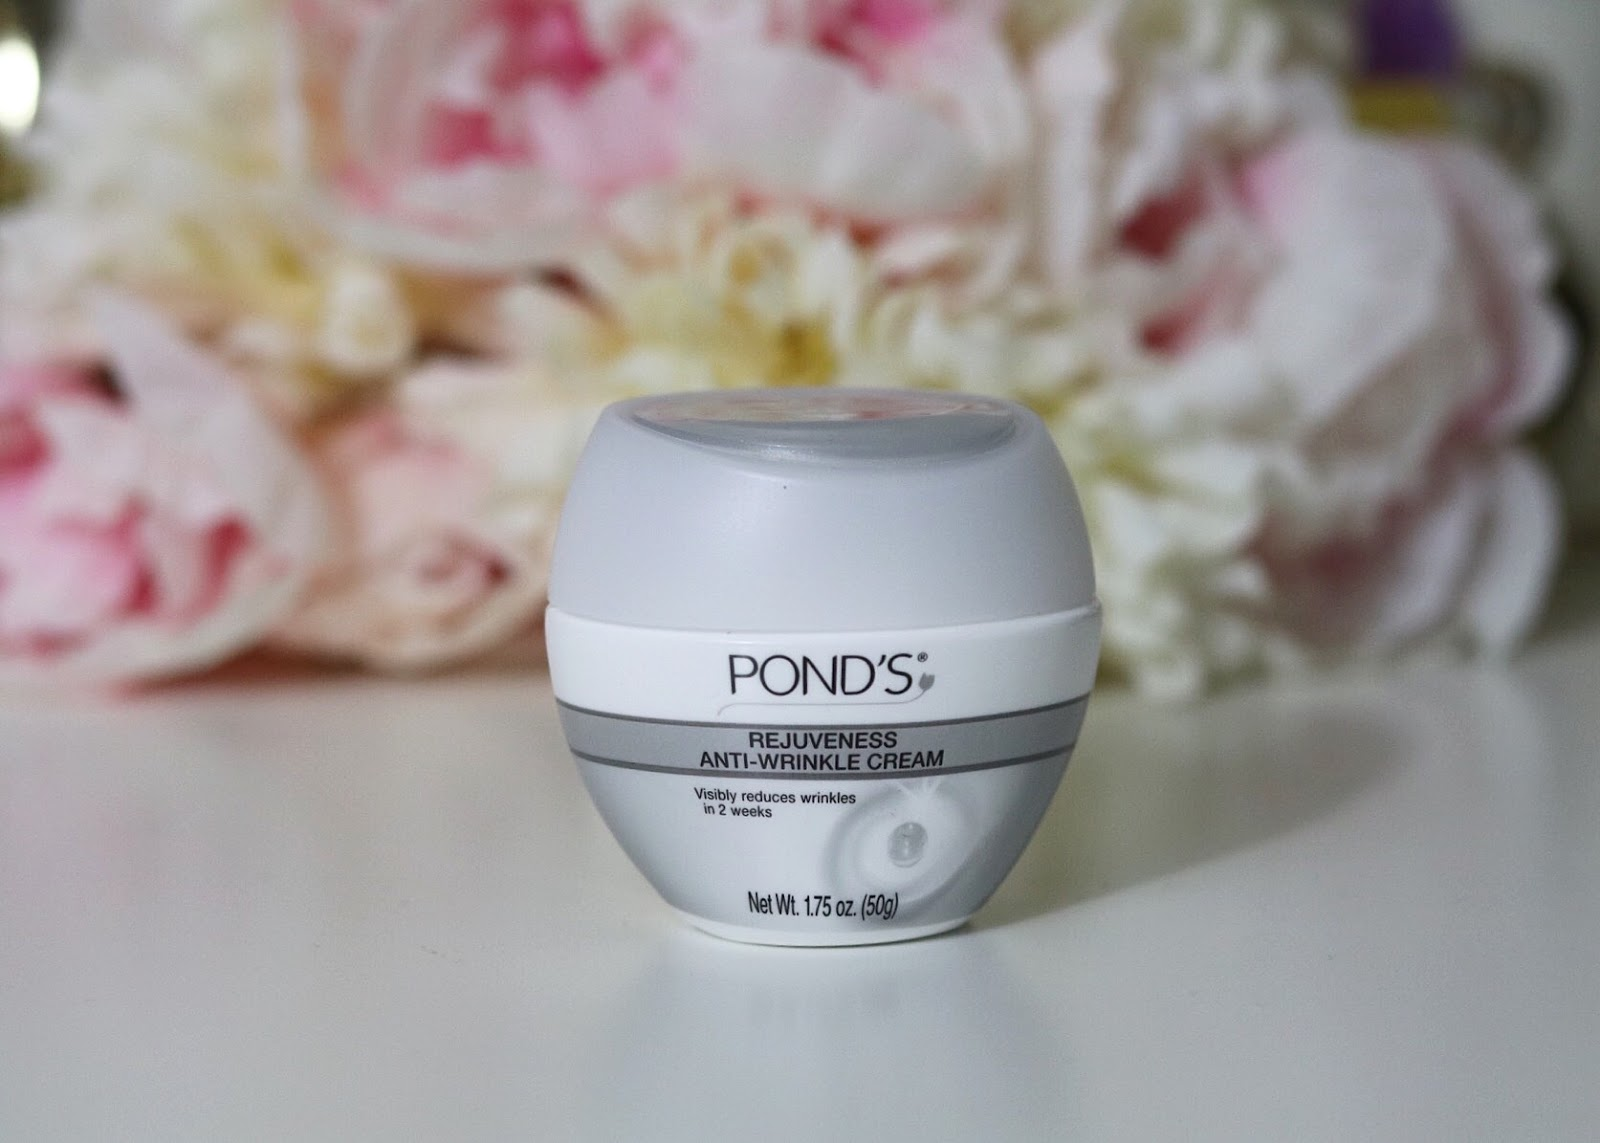 POND'S Rejuveness Anti-Wrinkle Cream Review, san diego fashion blogger, san diego beauty blogger